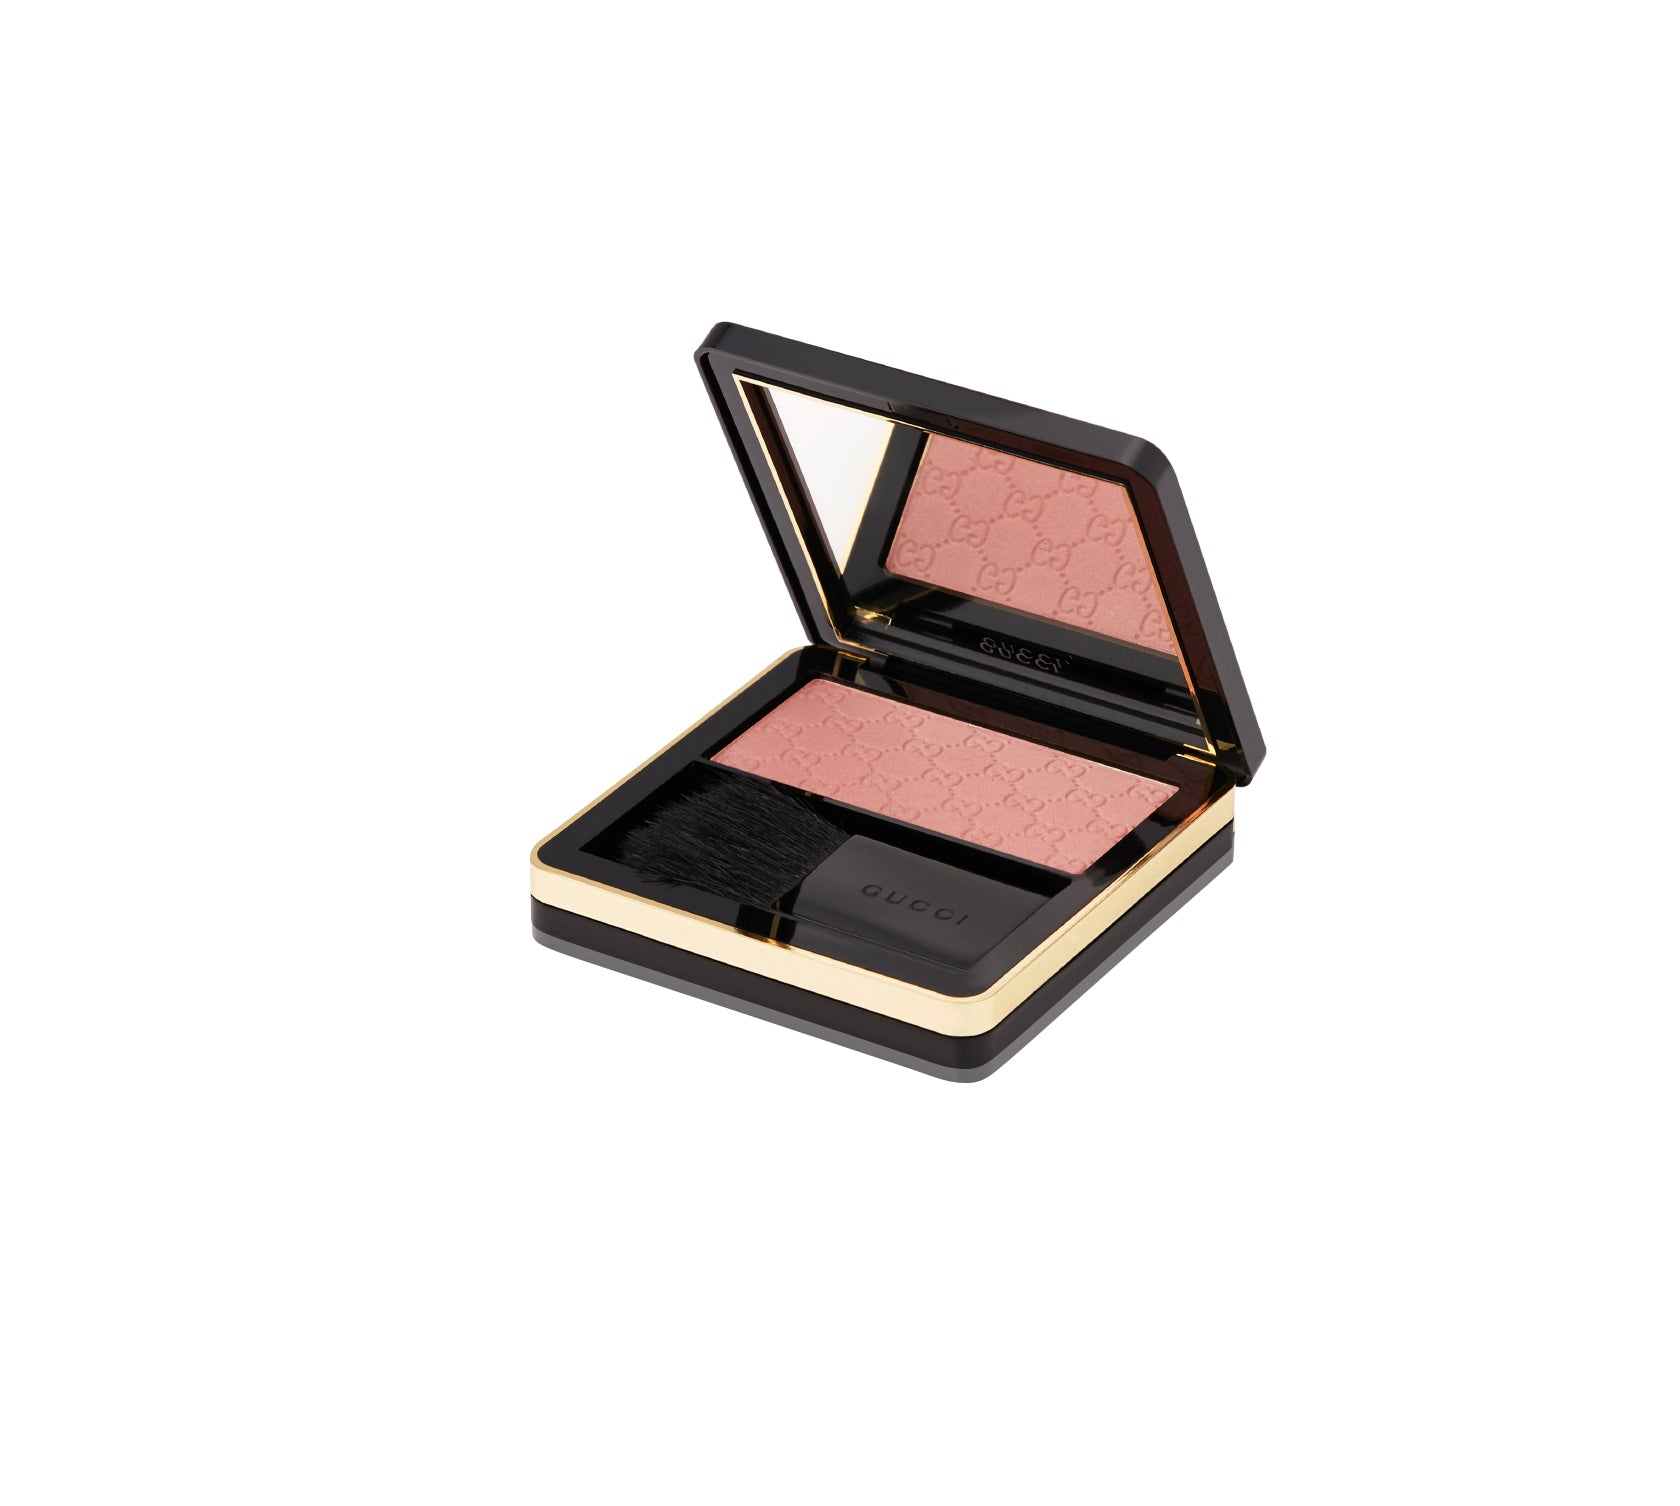 Gucci Face Sheer Blushing Powder